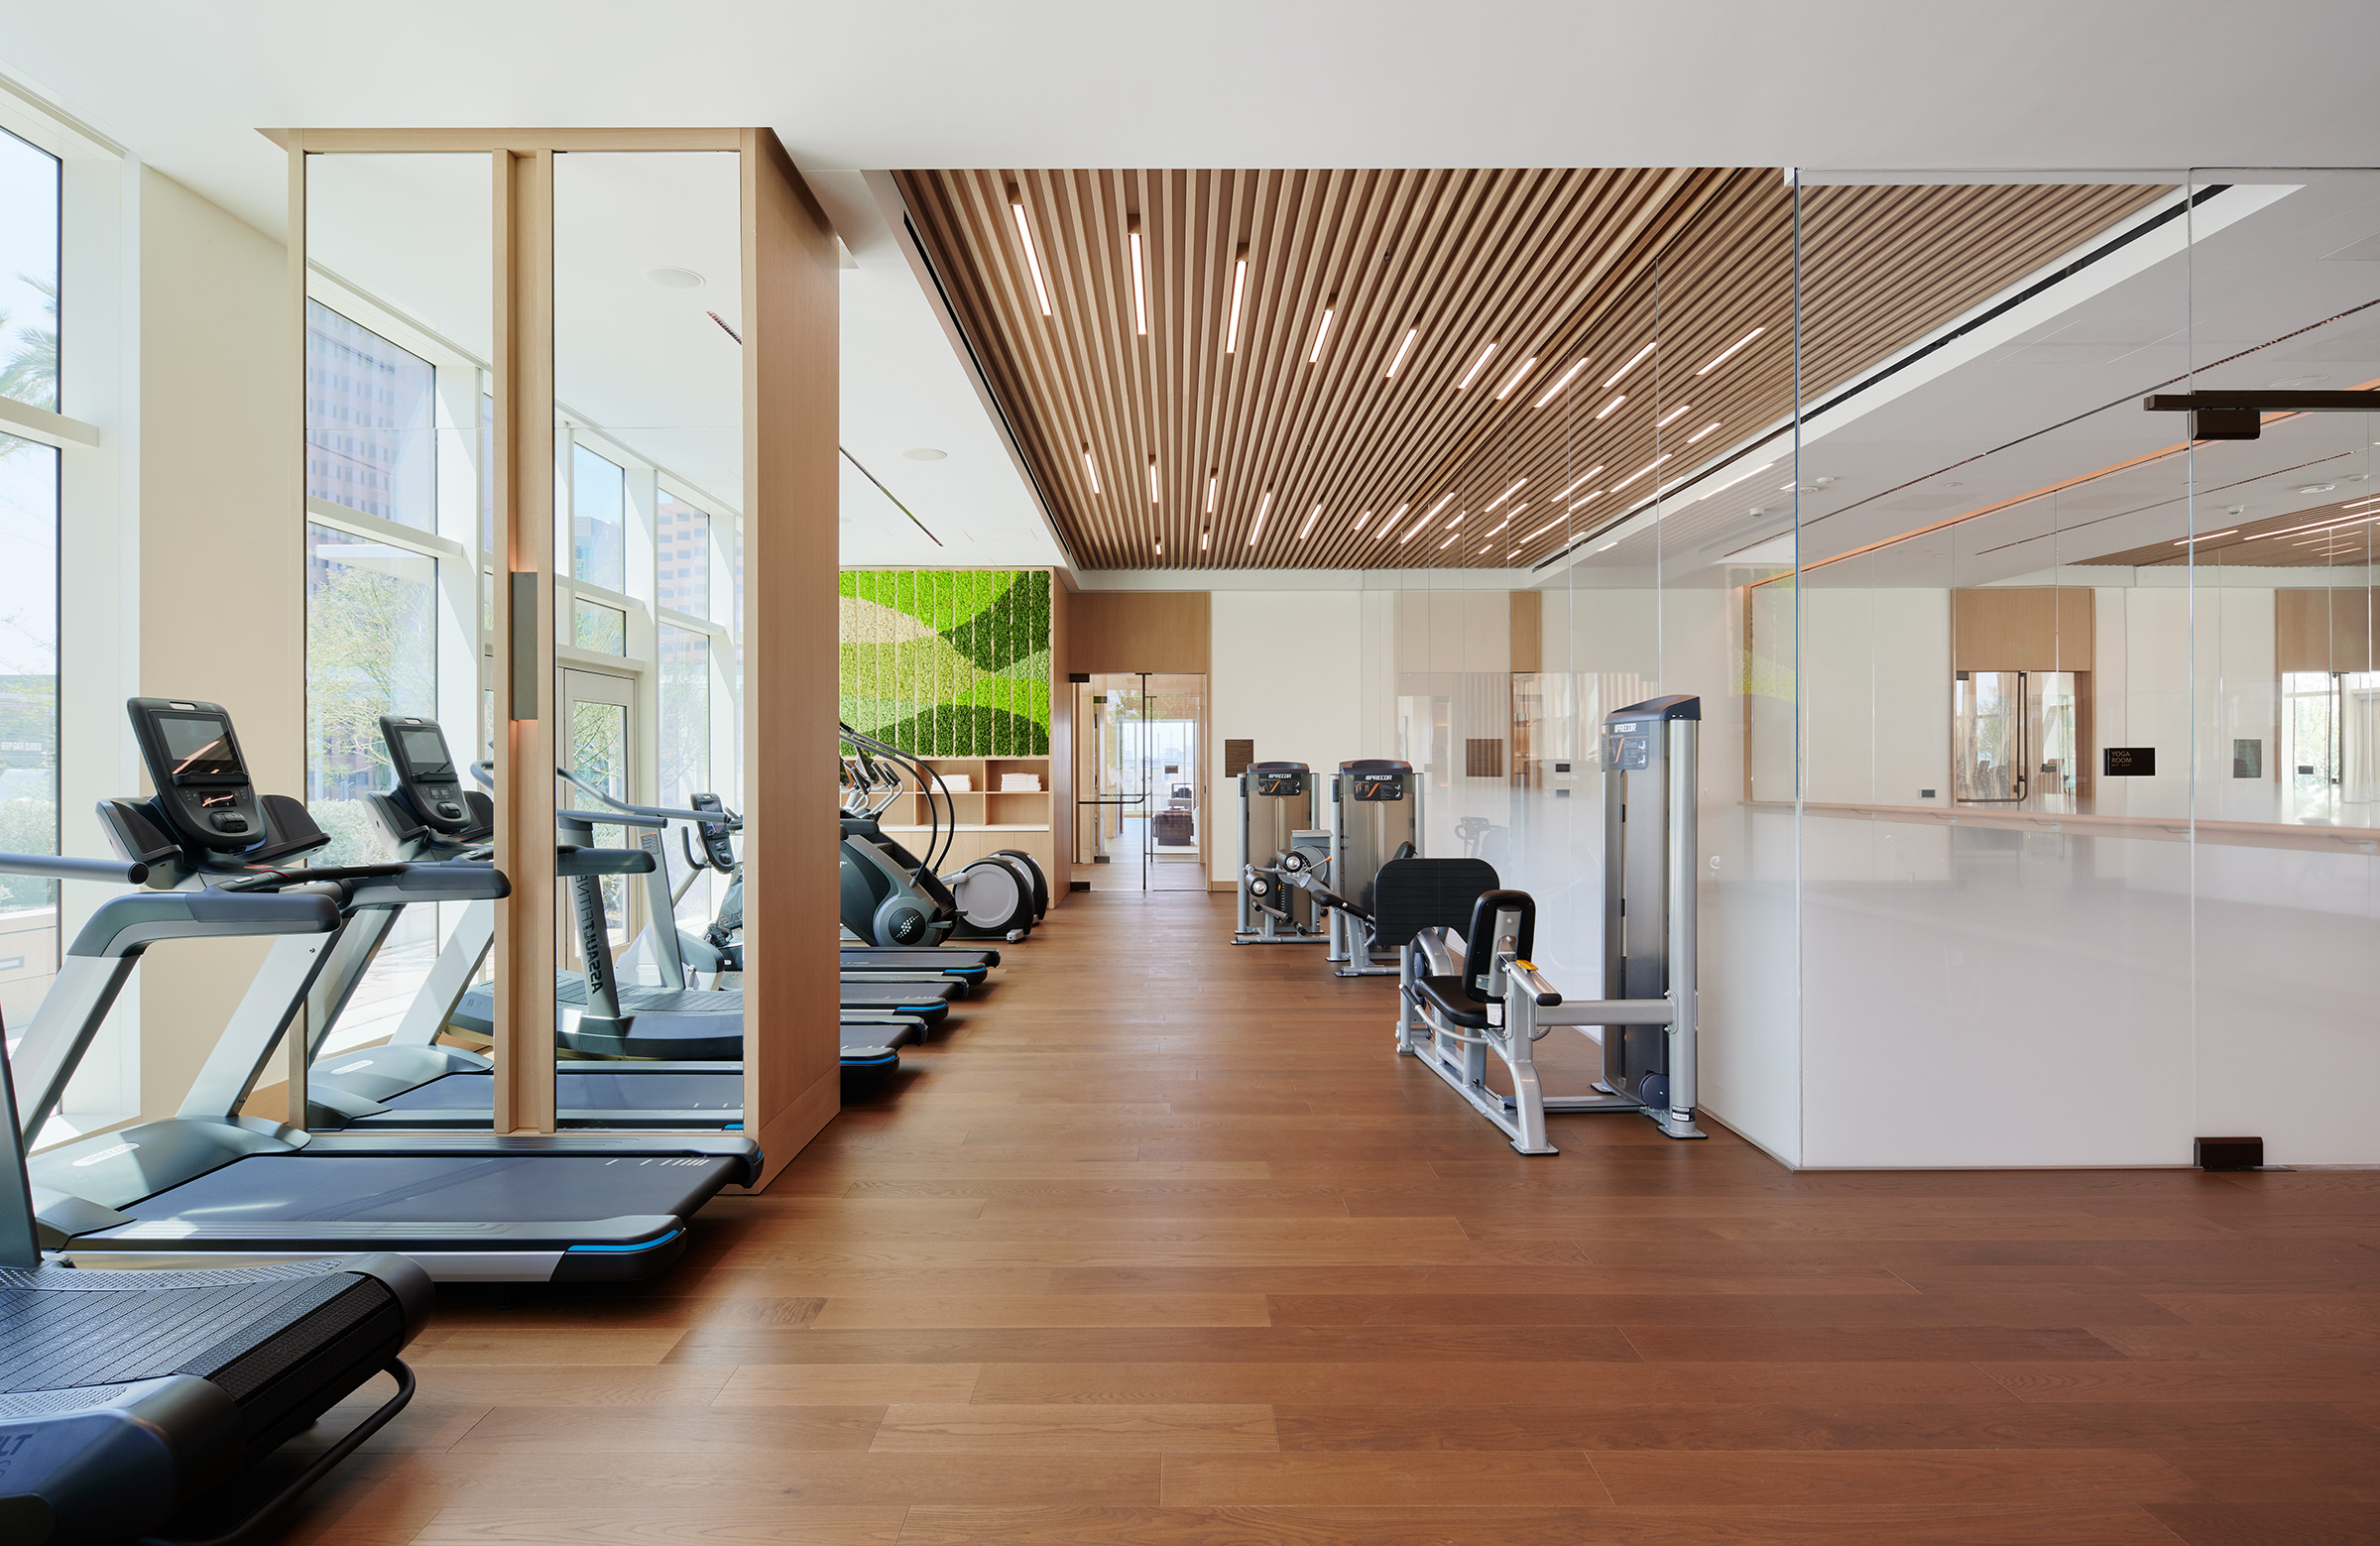 Luxury Residences in Downtown Los Angeles CA - State-of-the-Art Fitness Center with Stylish Interiors and Various Gym Equipment